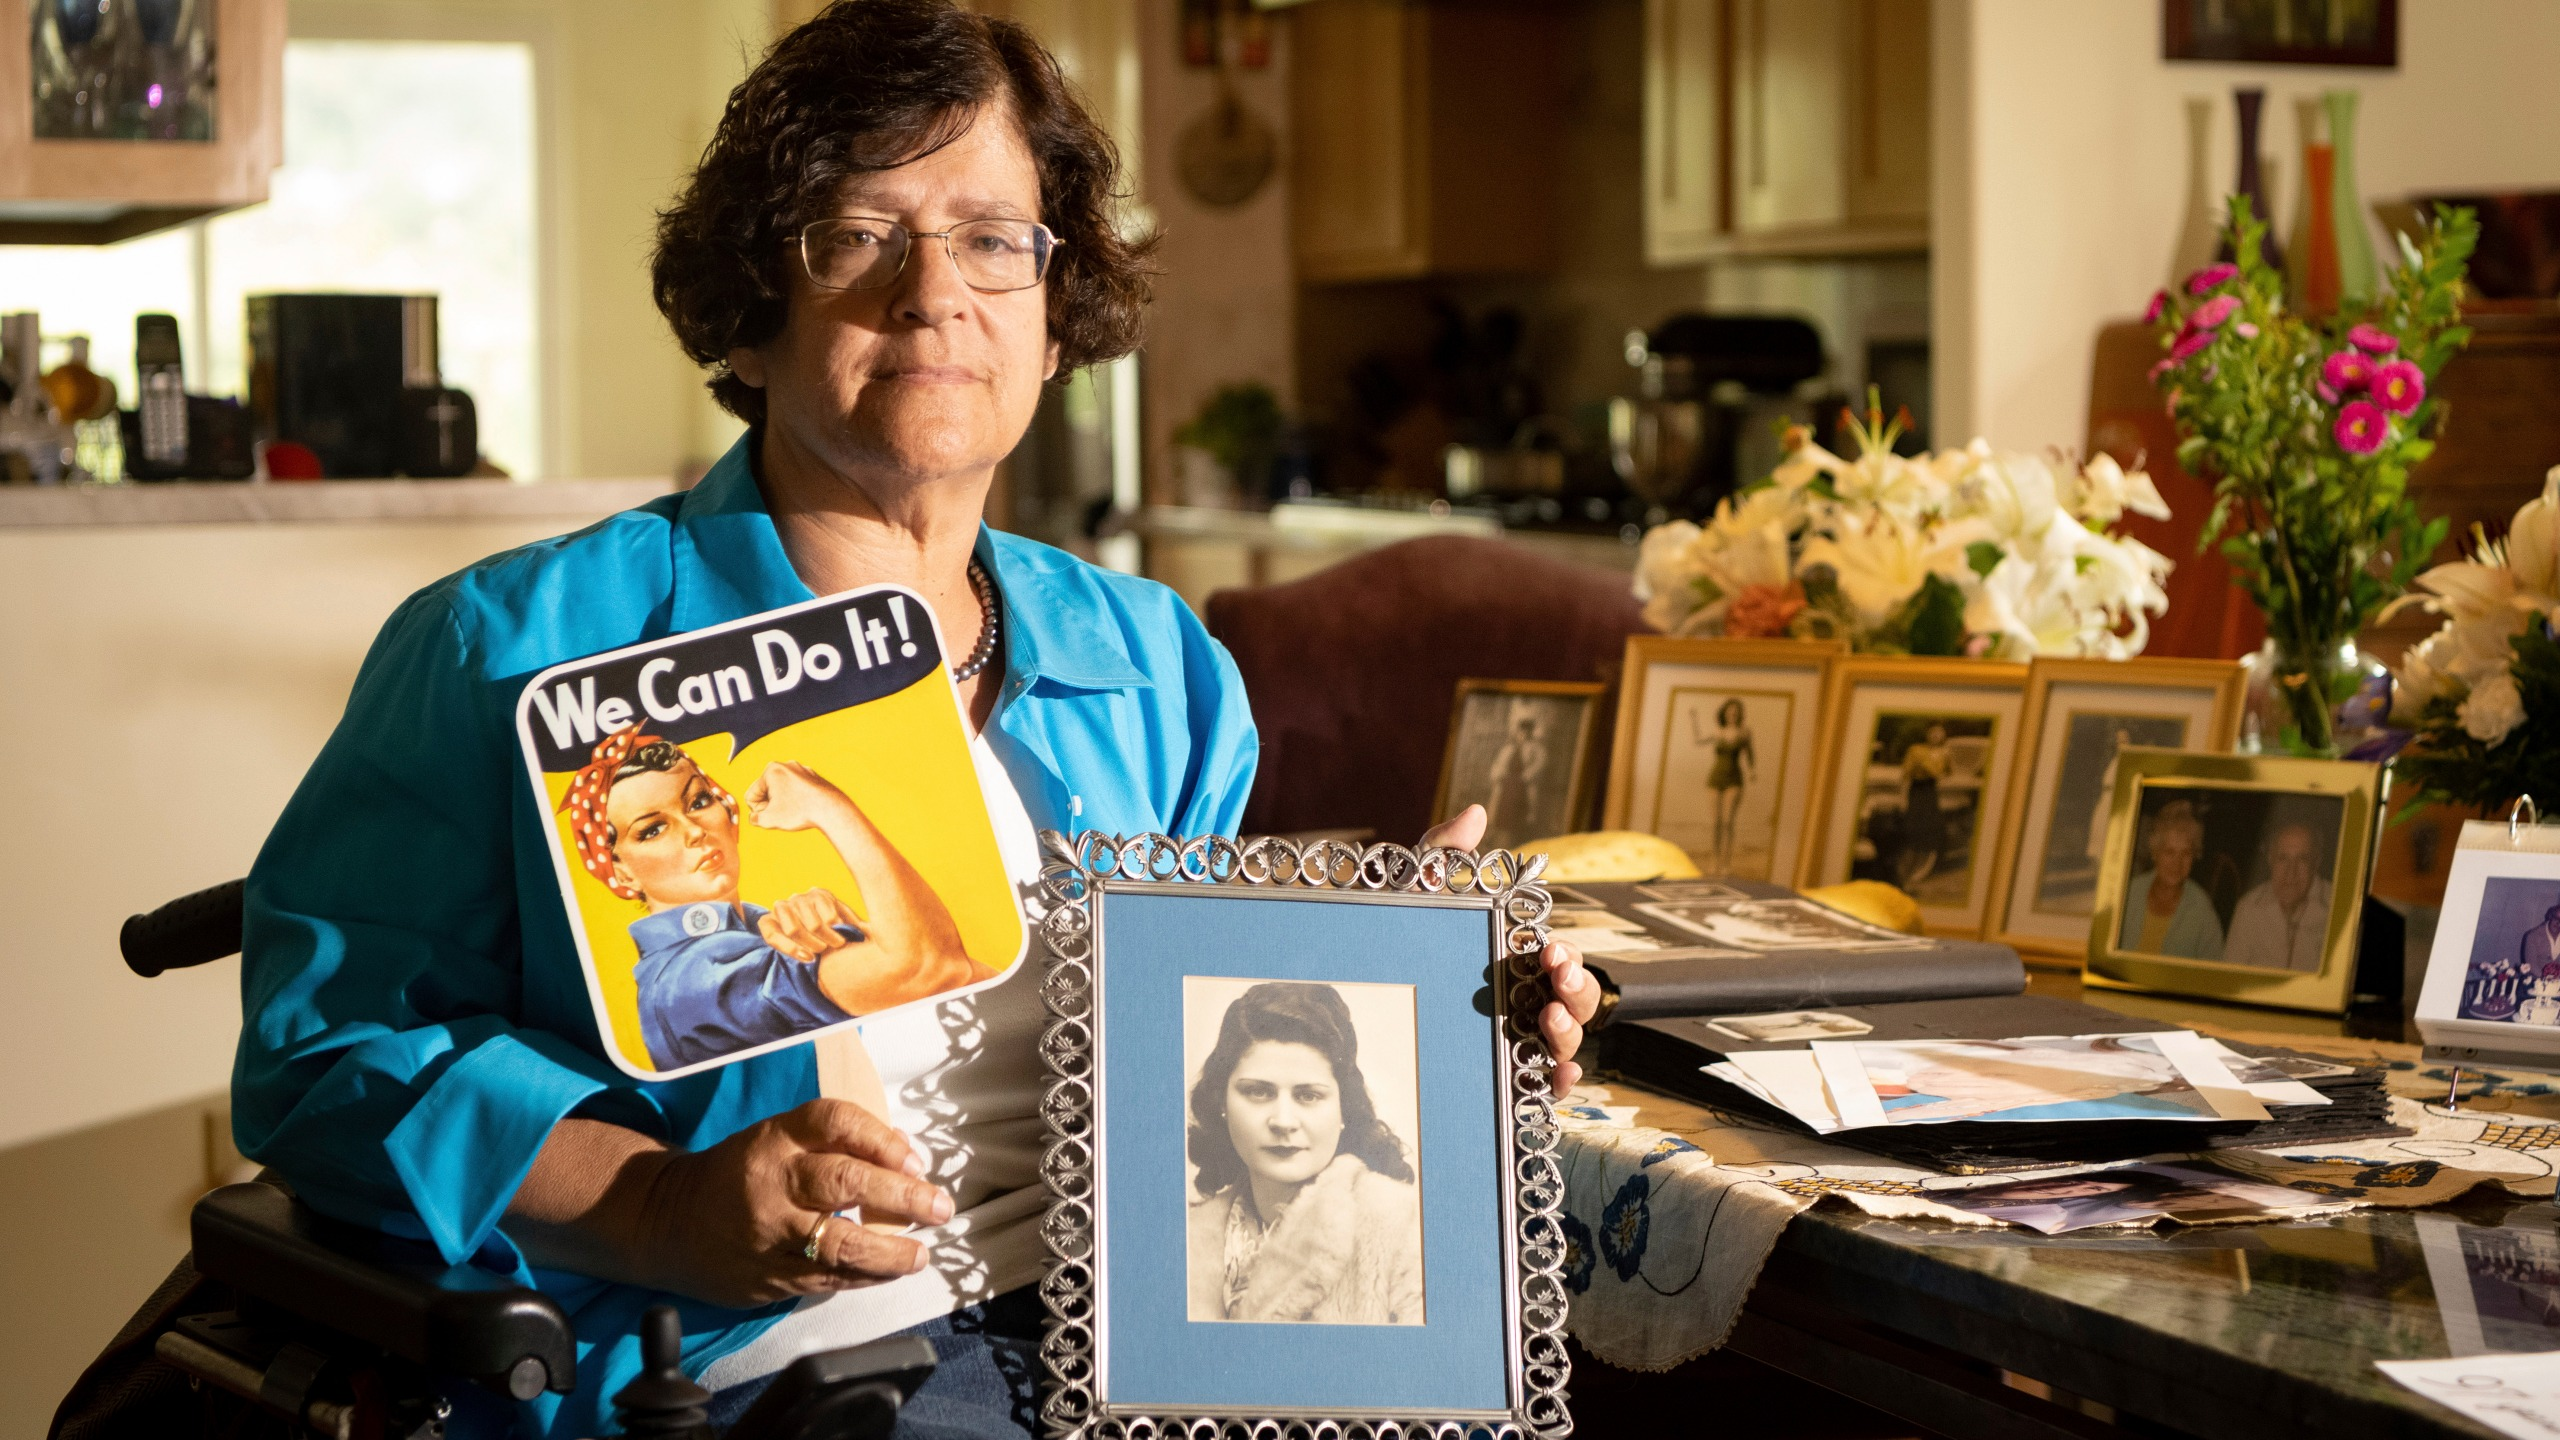 Dorene Giacopini holds up a photo of her mother Primetta Giacopini while posing for a photo at her home in Richmond, Calif. on Monday, Sept 27, 2021. Primetta Giacopini's life ended the way it began — in a pandemic. She was two years old when she lost her mother to the Spanish flu in Connecticut in 1918. Giacopini contracted COVID-19 earlier this month. The 105-year-old struggled with the disease for a week before she died Sept. 16. (AP Photo/Josh Edelson)